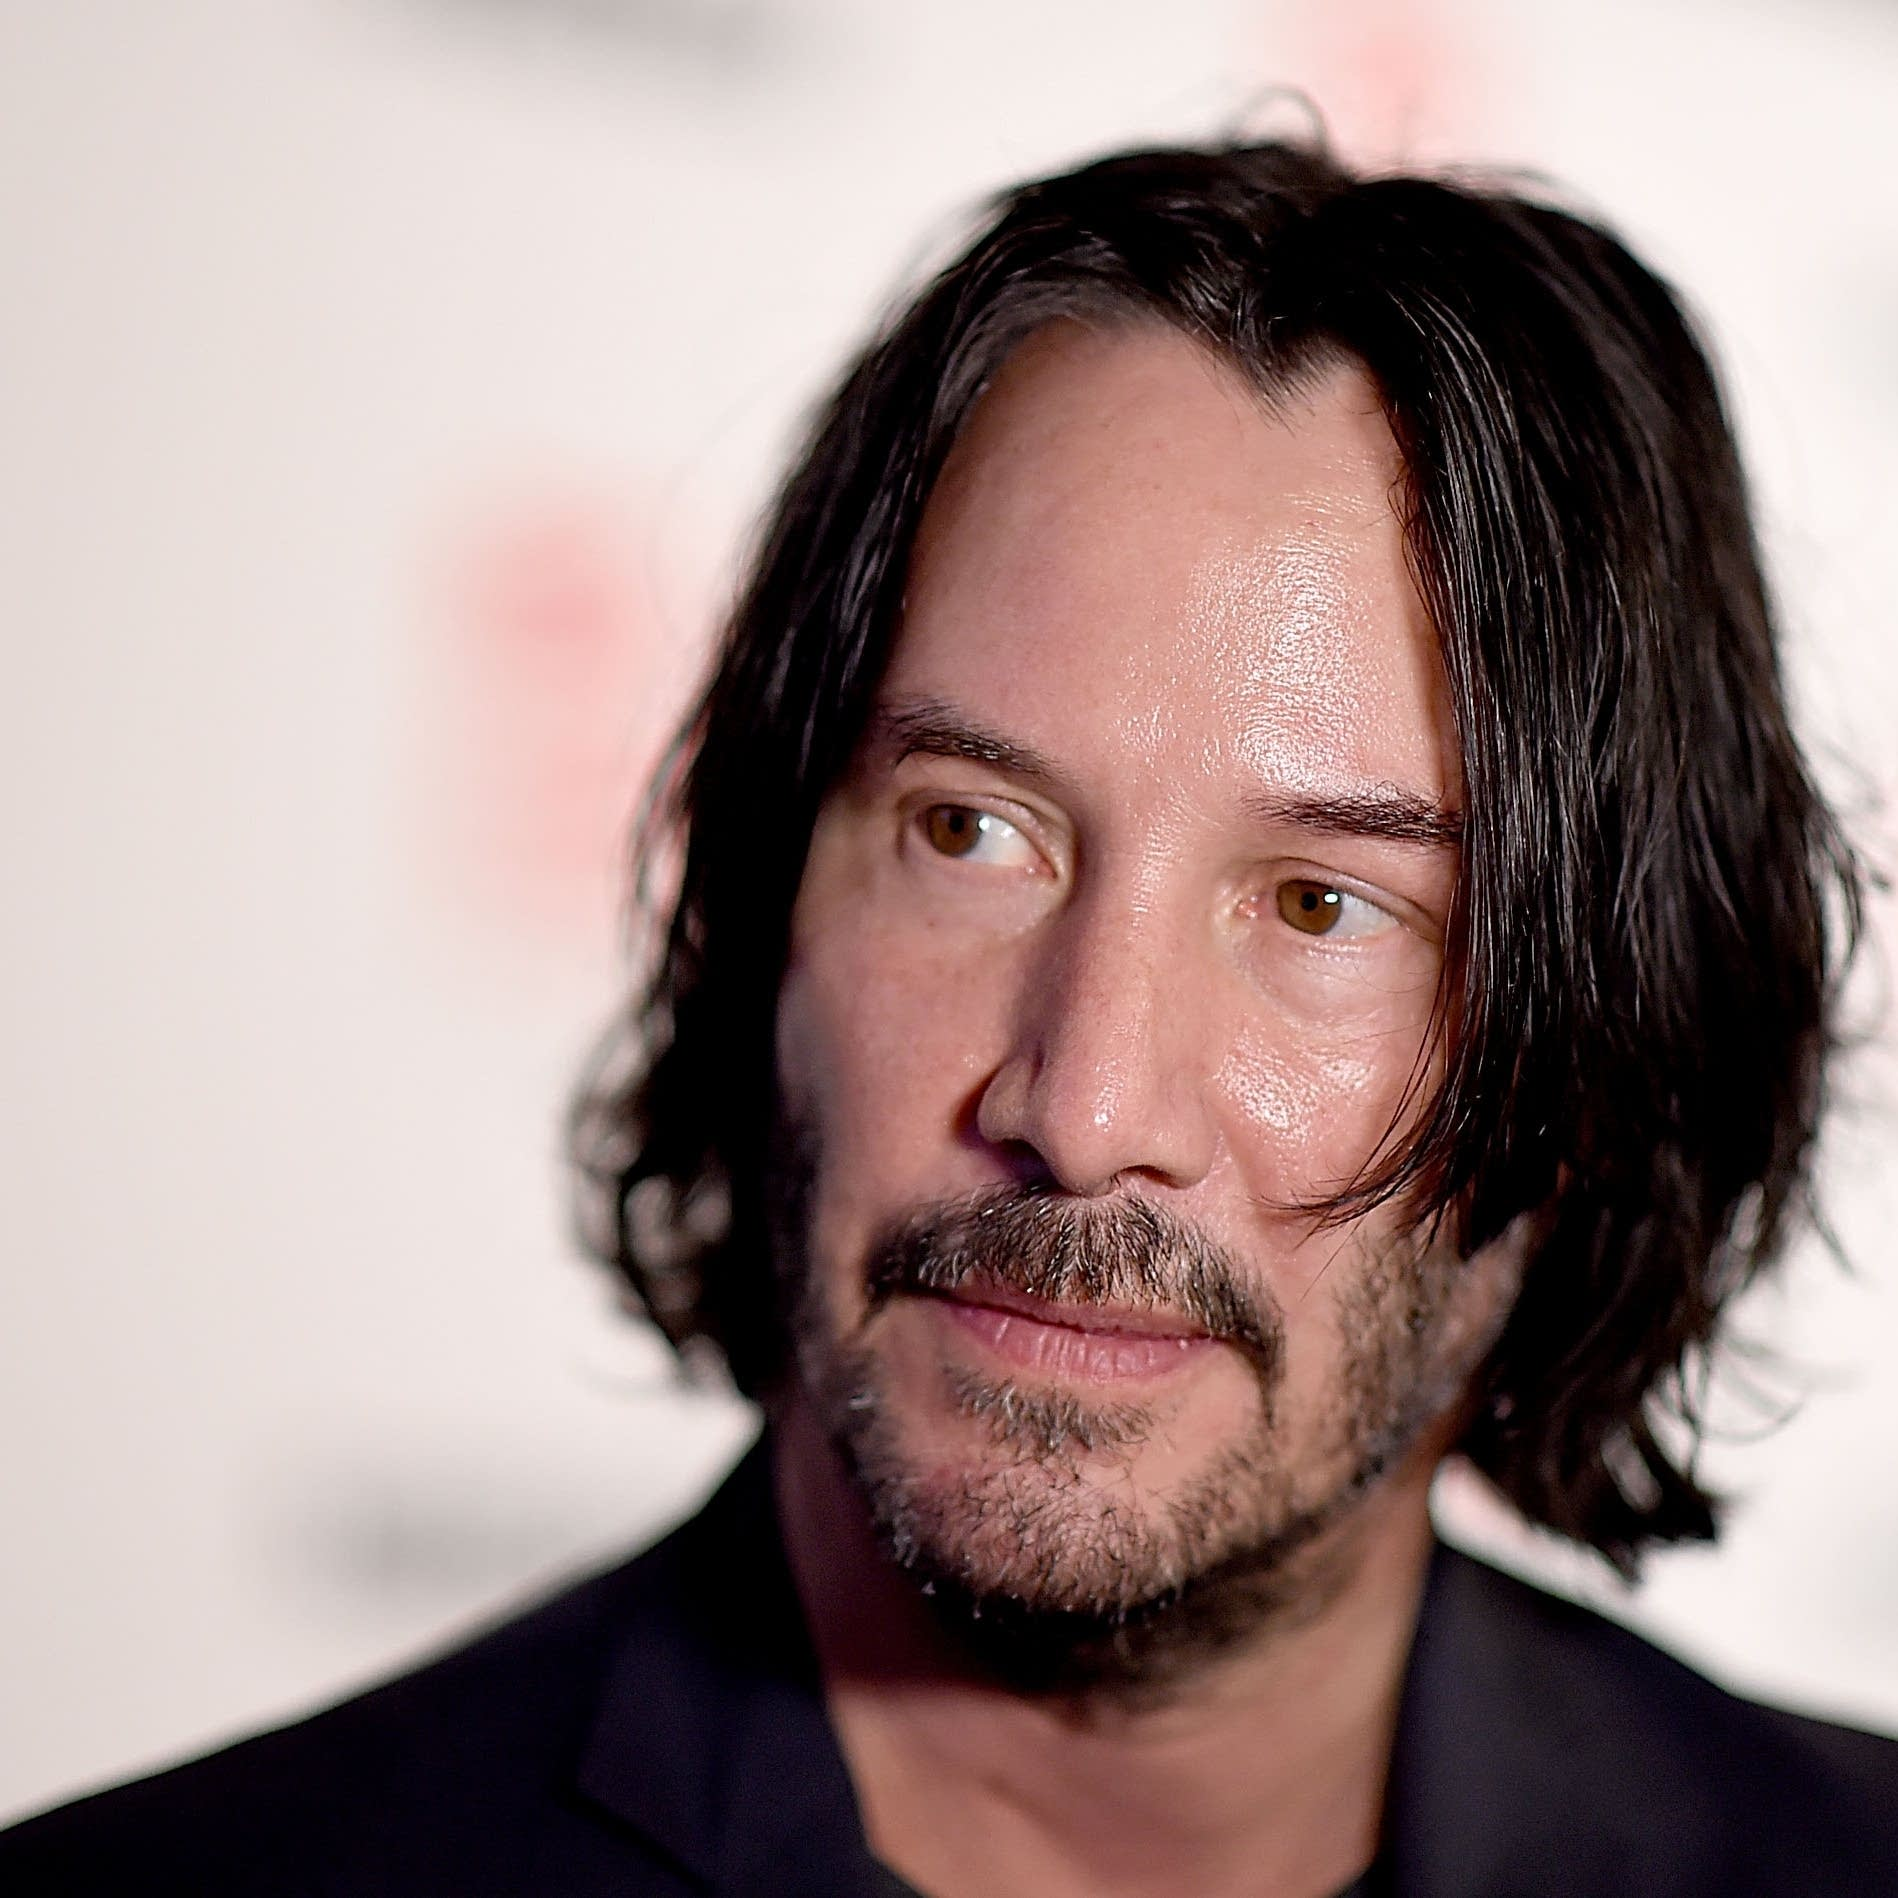 Keanu Reeves at a film premiere in 2018.